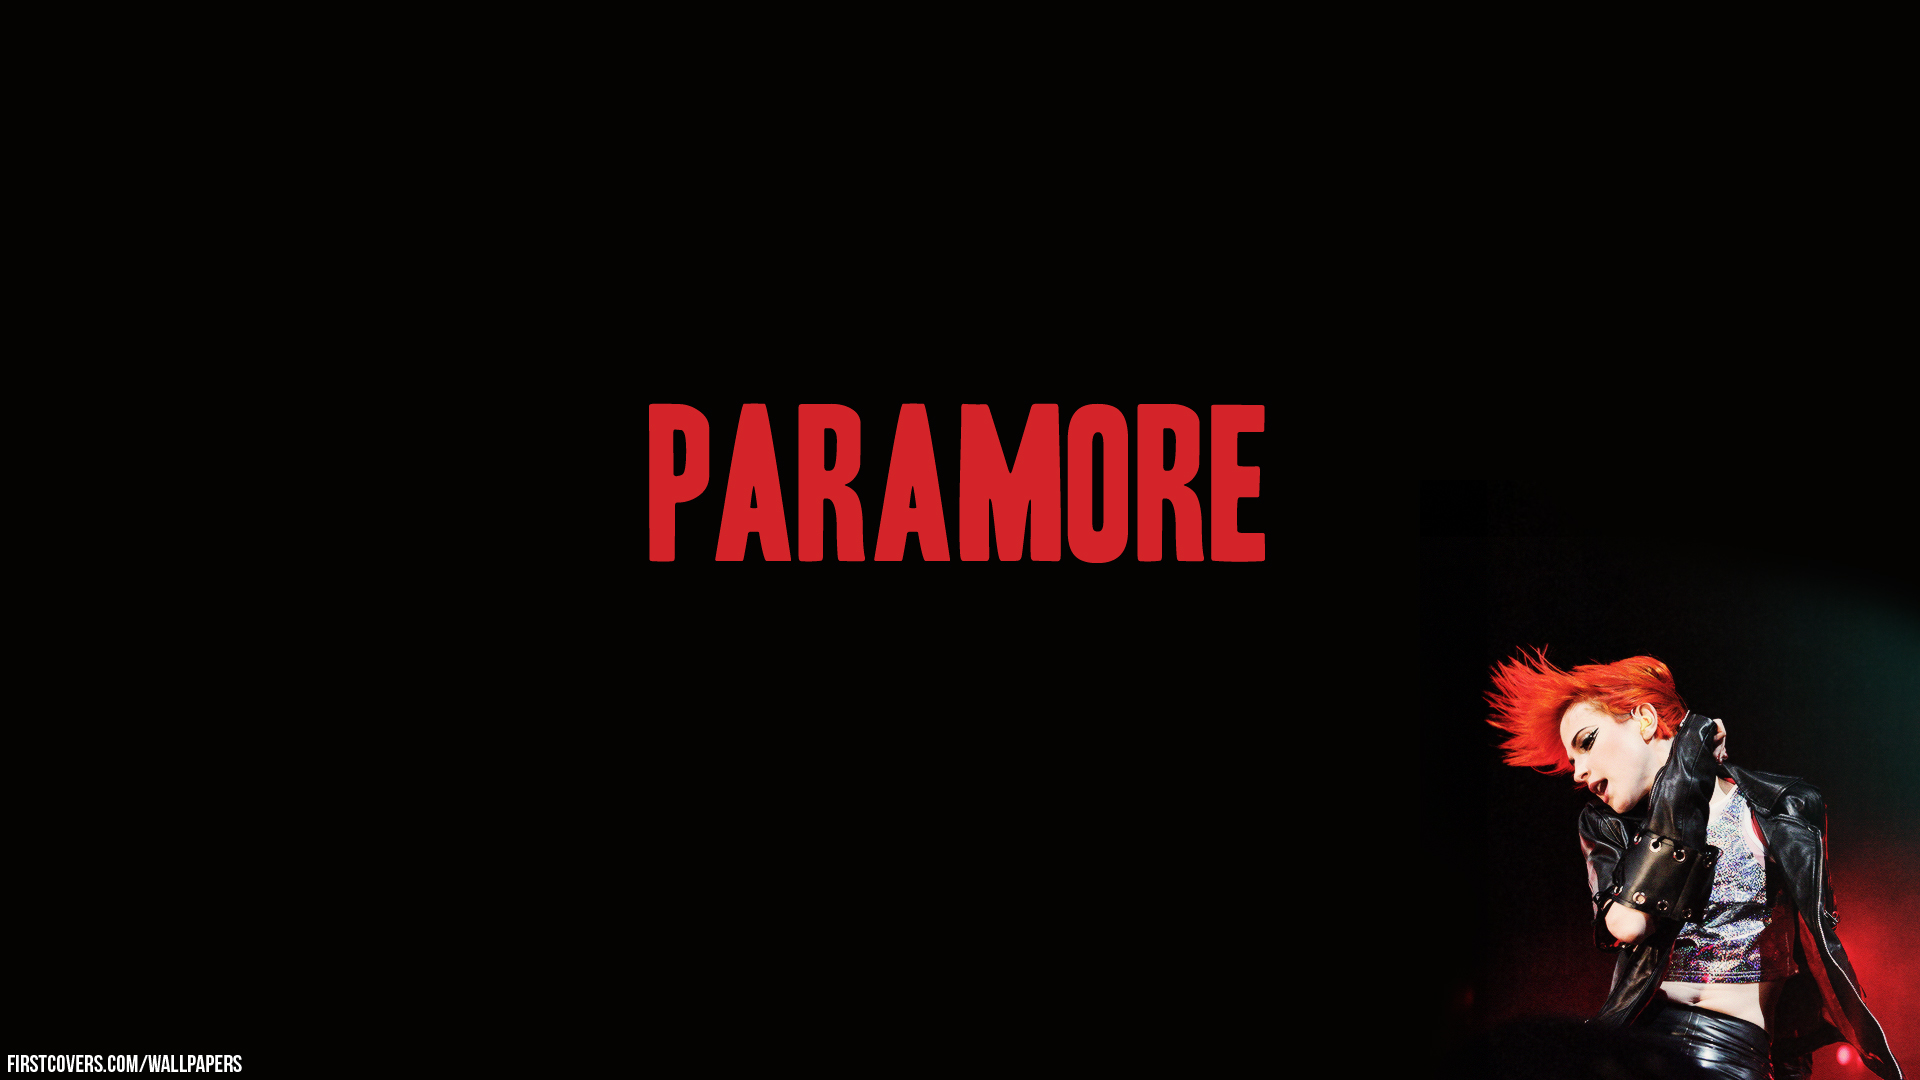 Paramore Wallpapers Hd Wallpapersafari